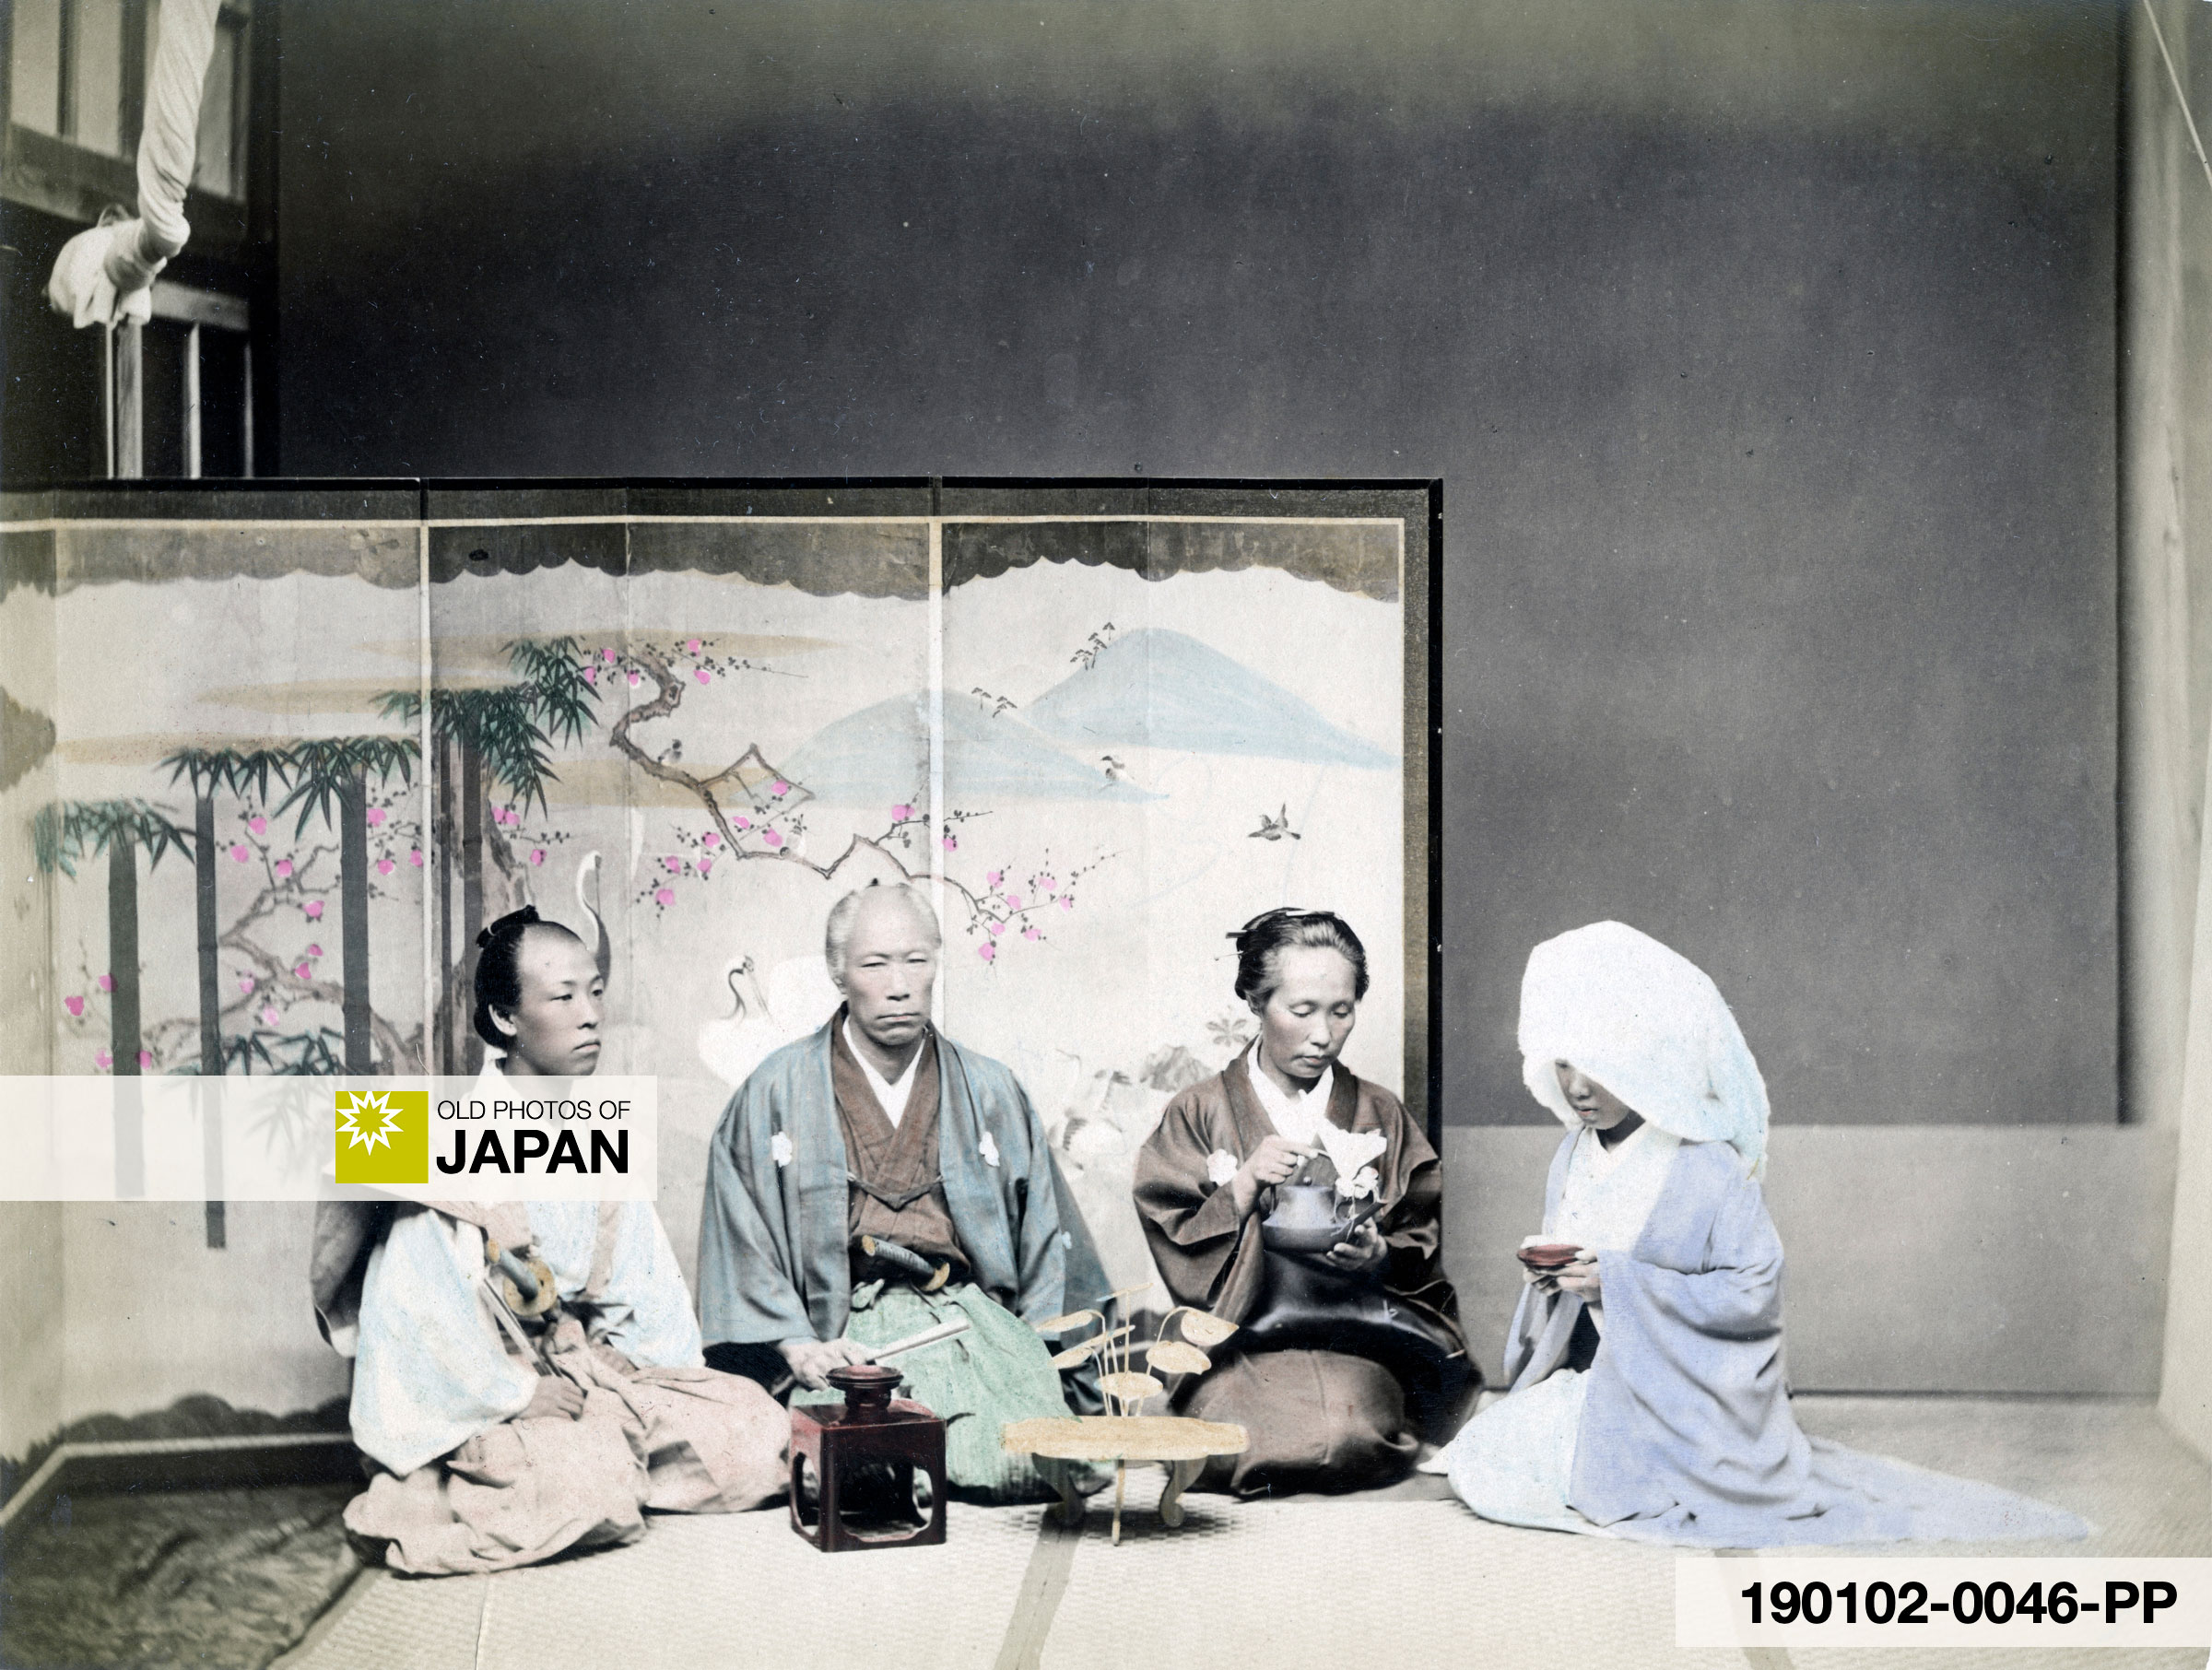 Late 19th century Japanese marriage ritual